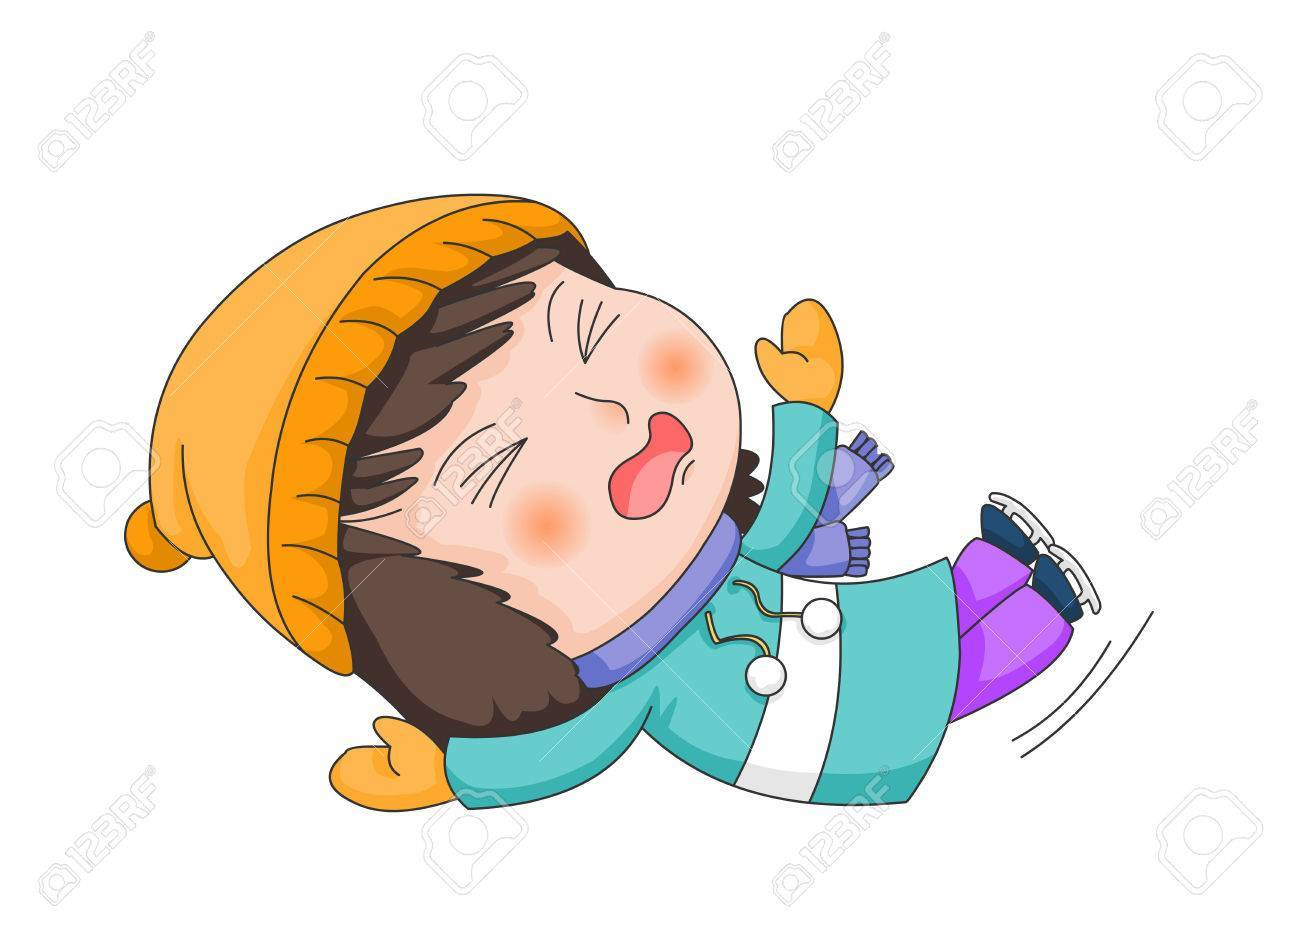 Child falling clipart 1 » Clipart Portal.